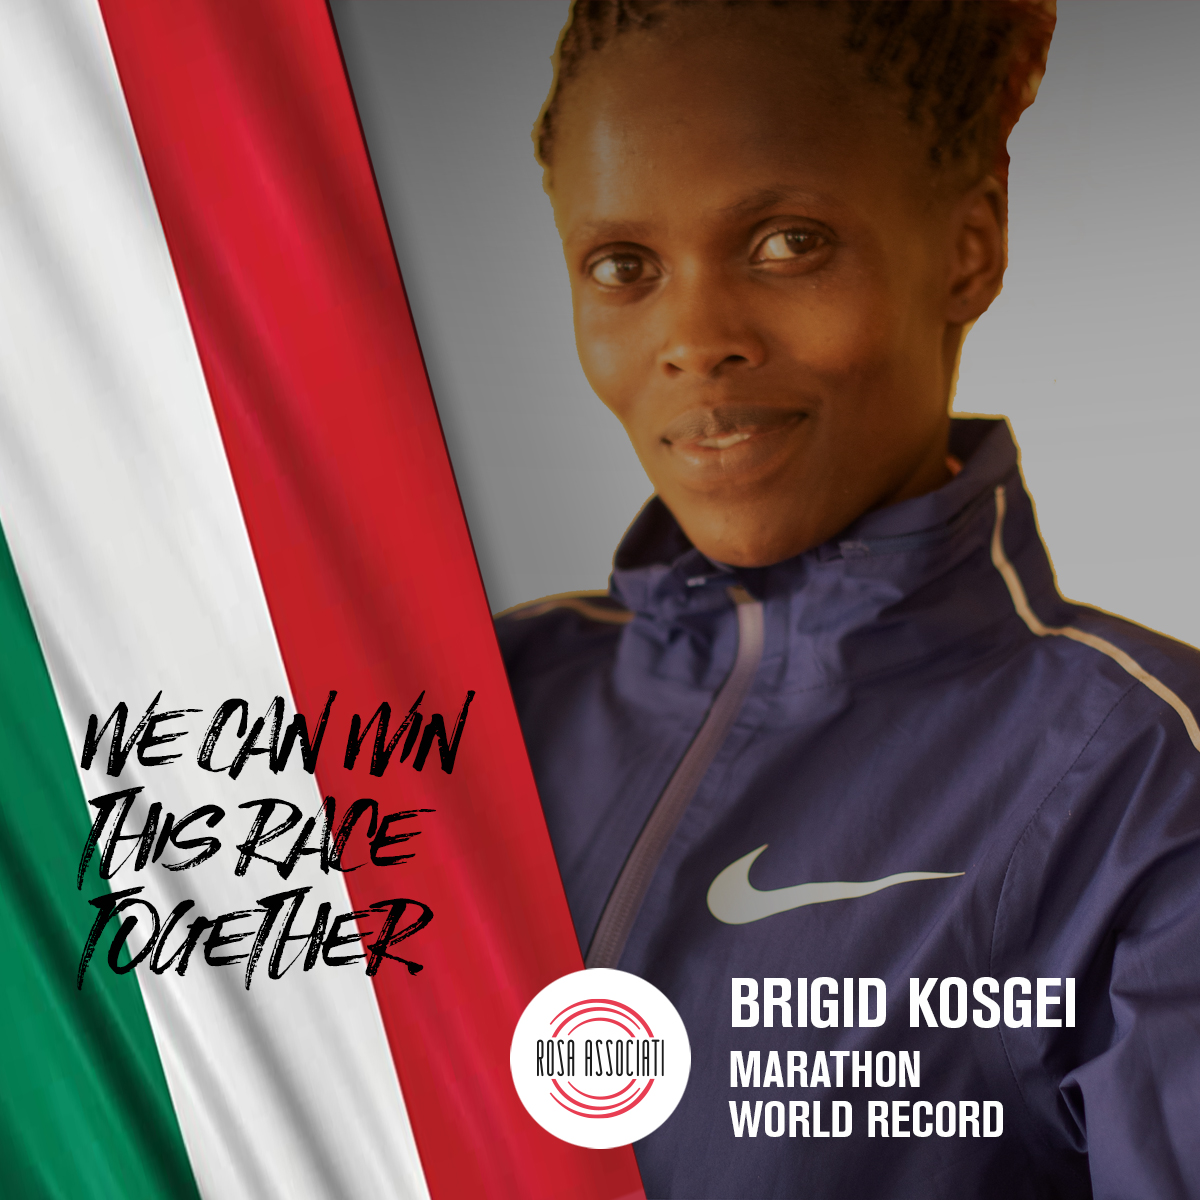 21 2020 - Campagna social We can win this race together - Brigid Kosgei